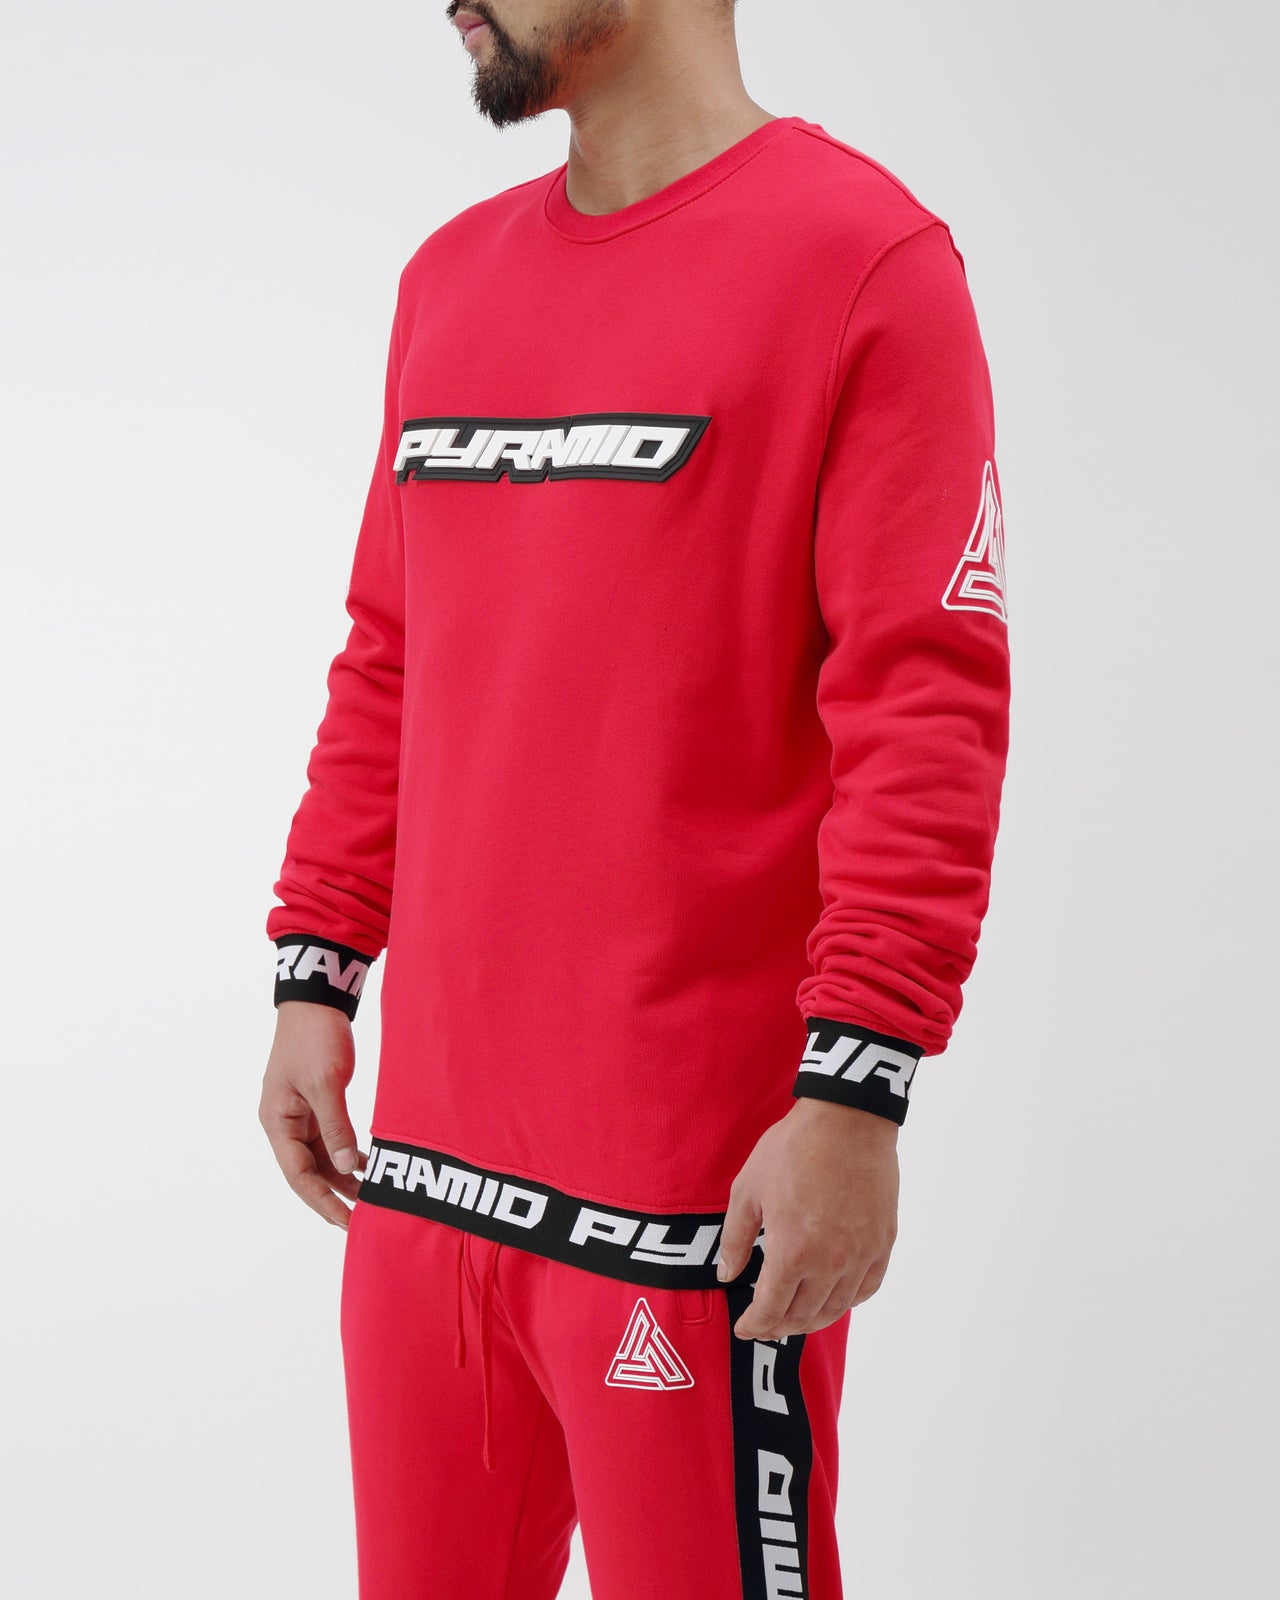 Pyramid Sweatshirt - Color: Red